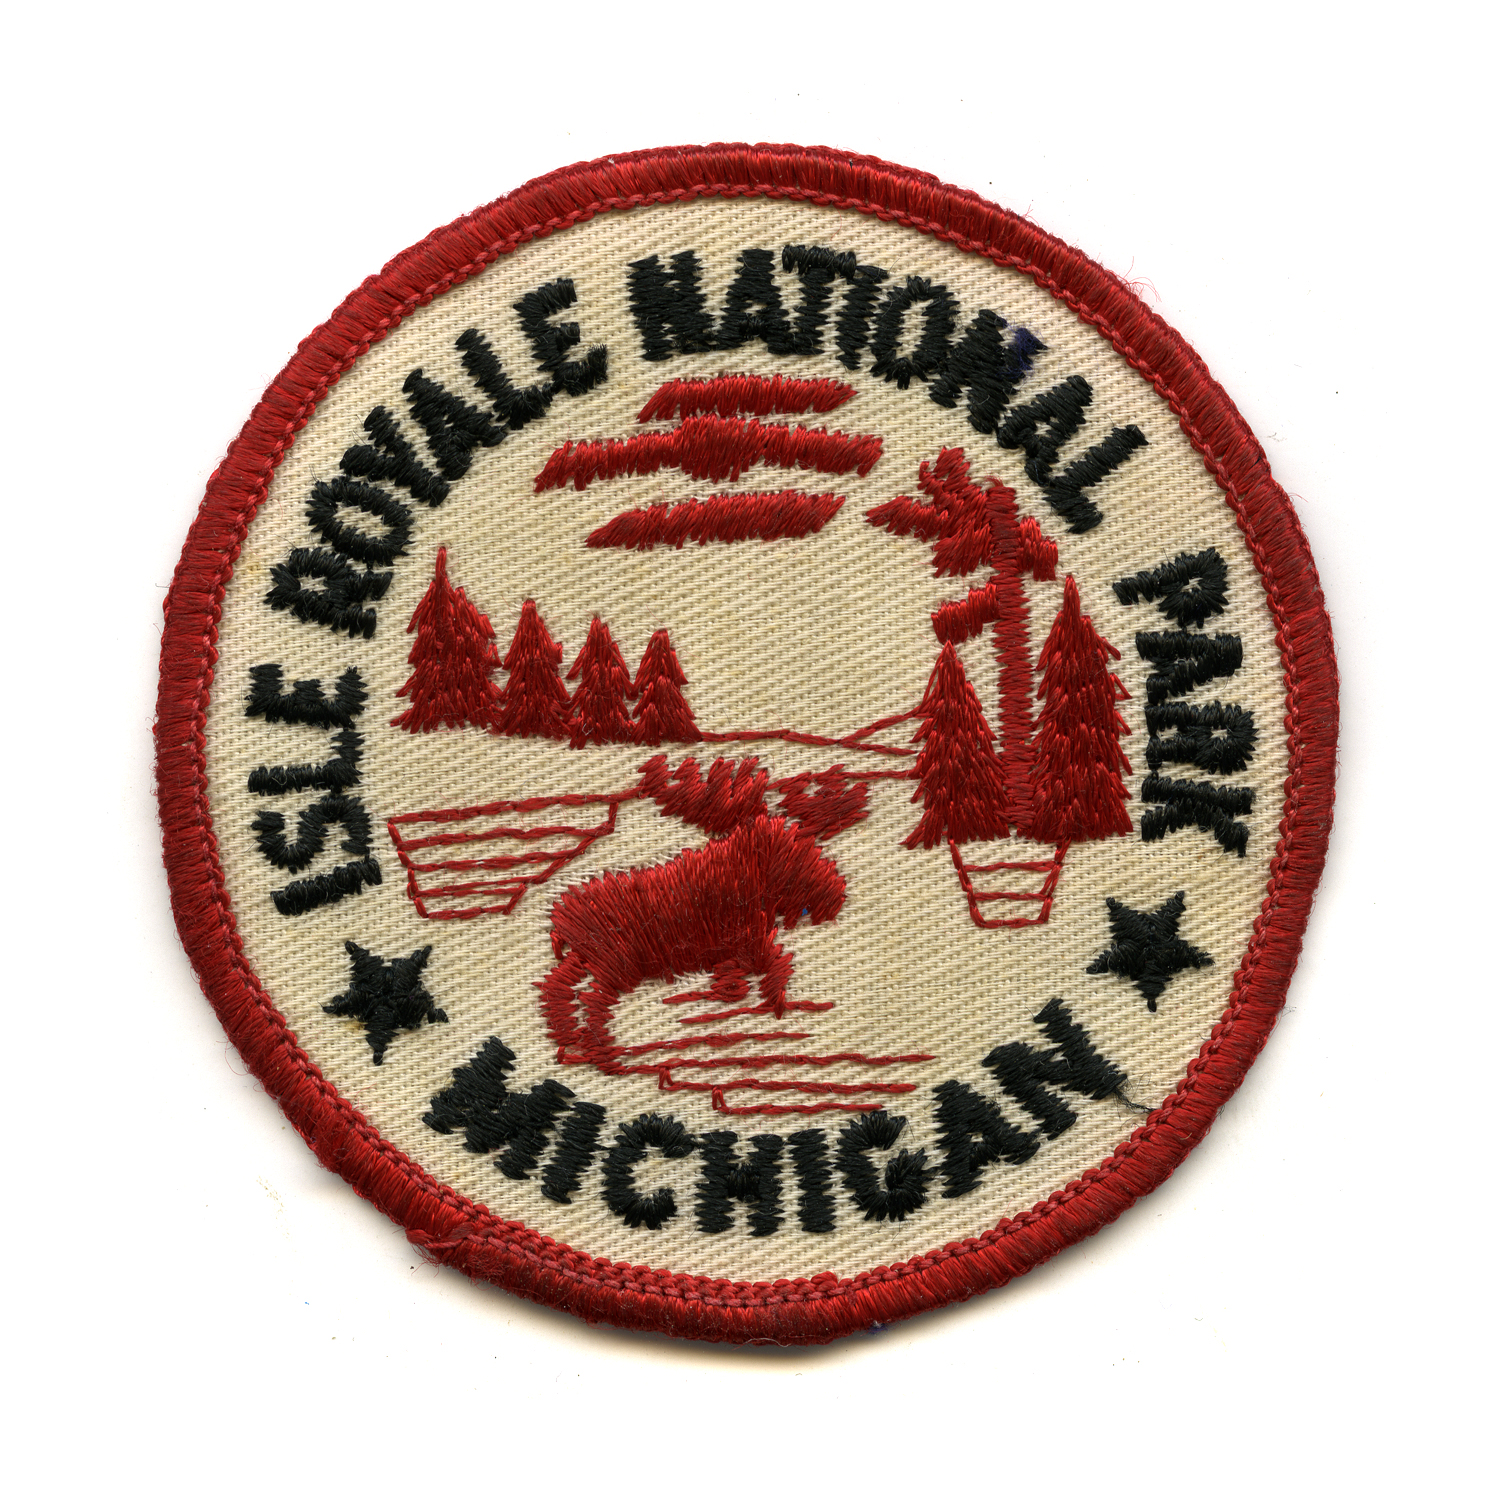 nps_patch_project_isle_royale_national_park_patch_1.jpg